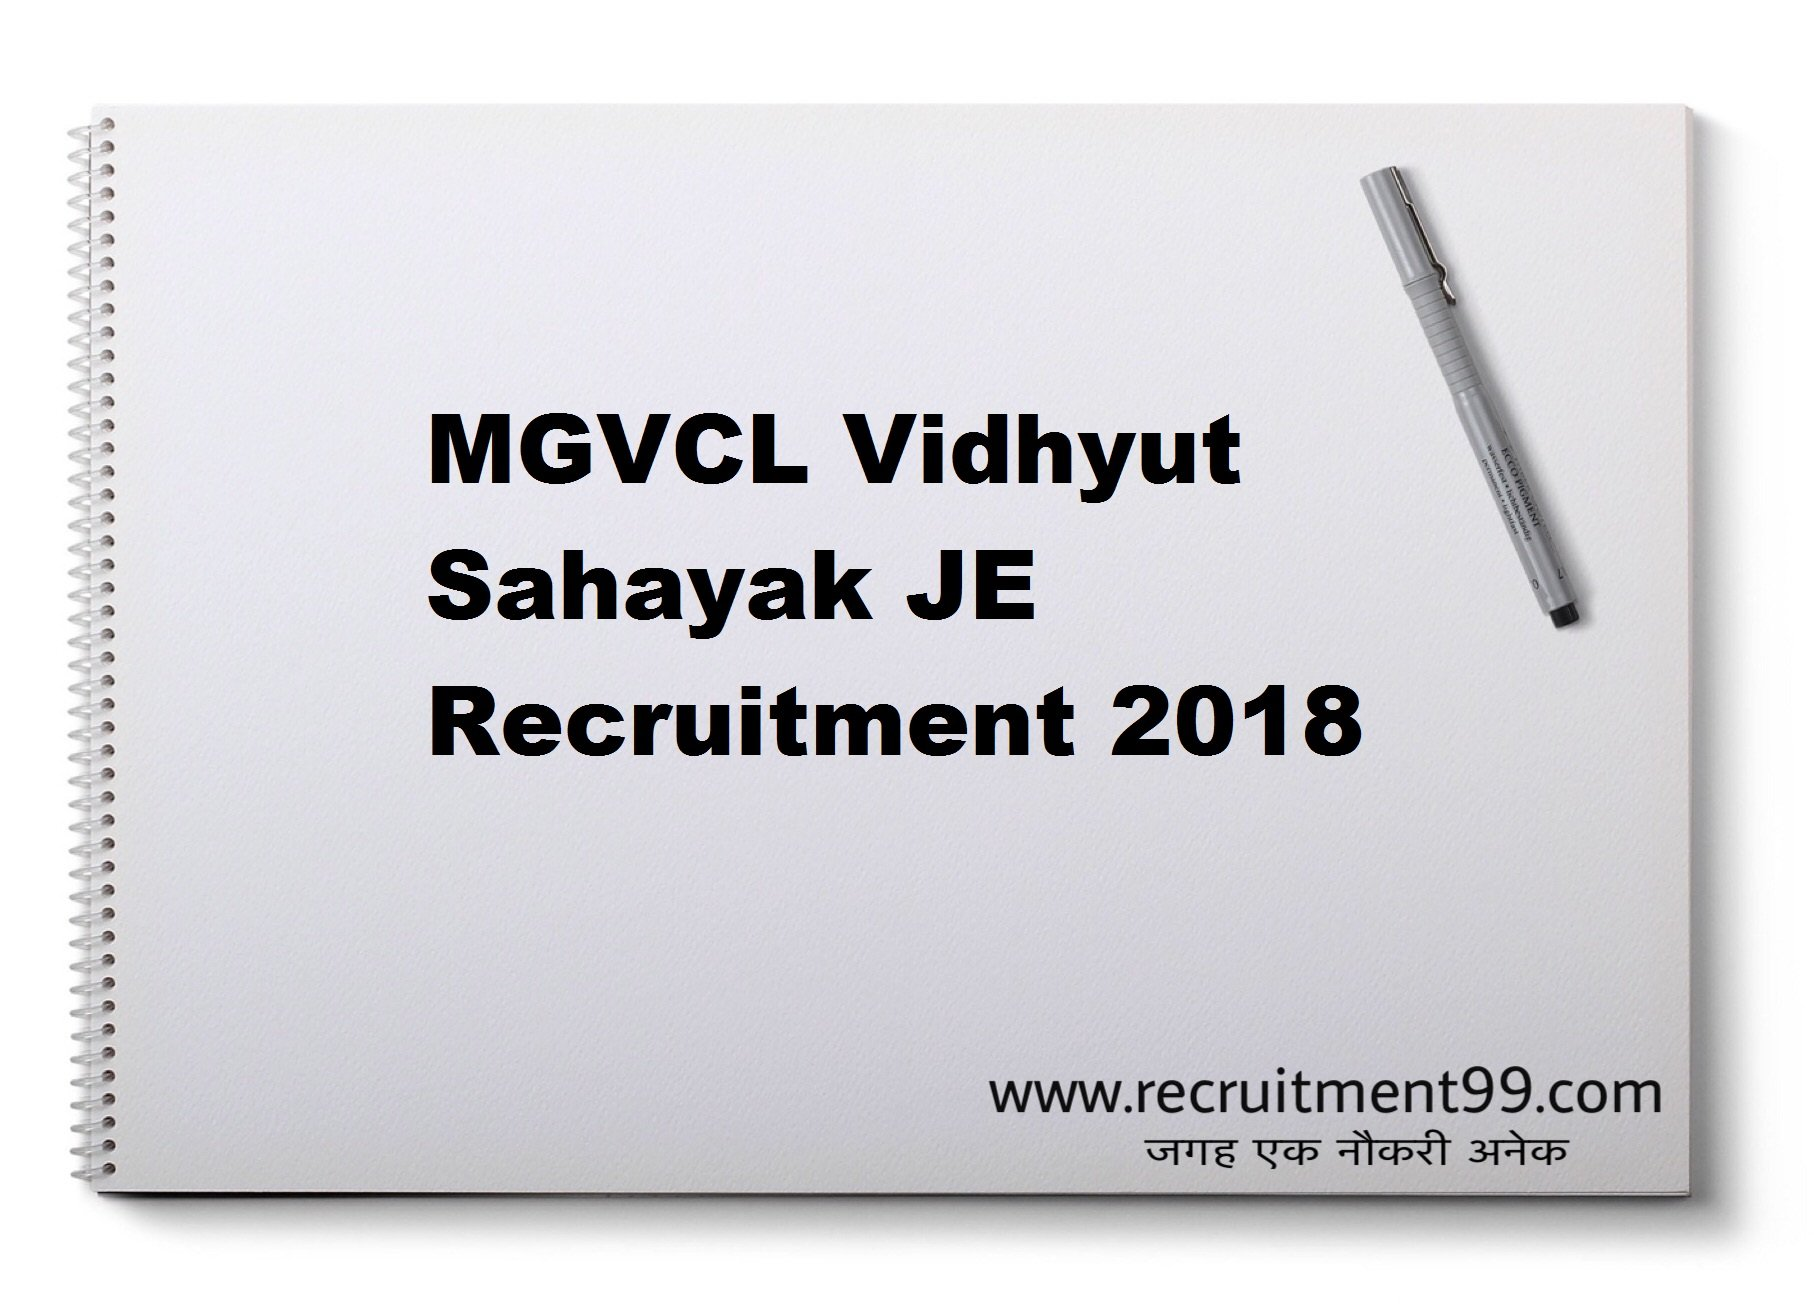 MGVCL Vidhyut Sahayak JE Recruitment Admit Card Result 2018